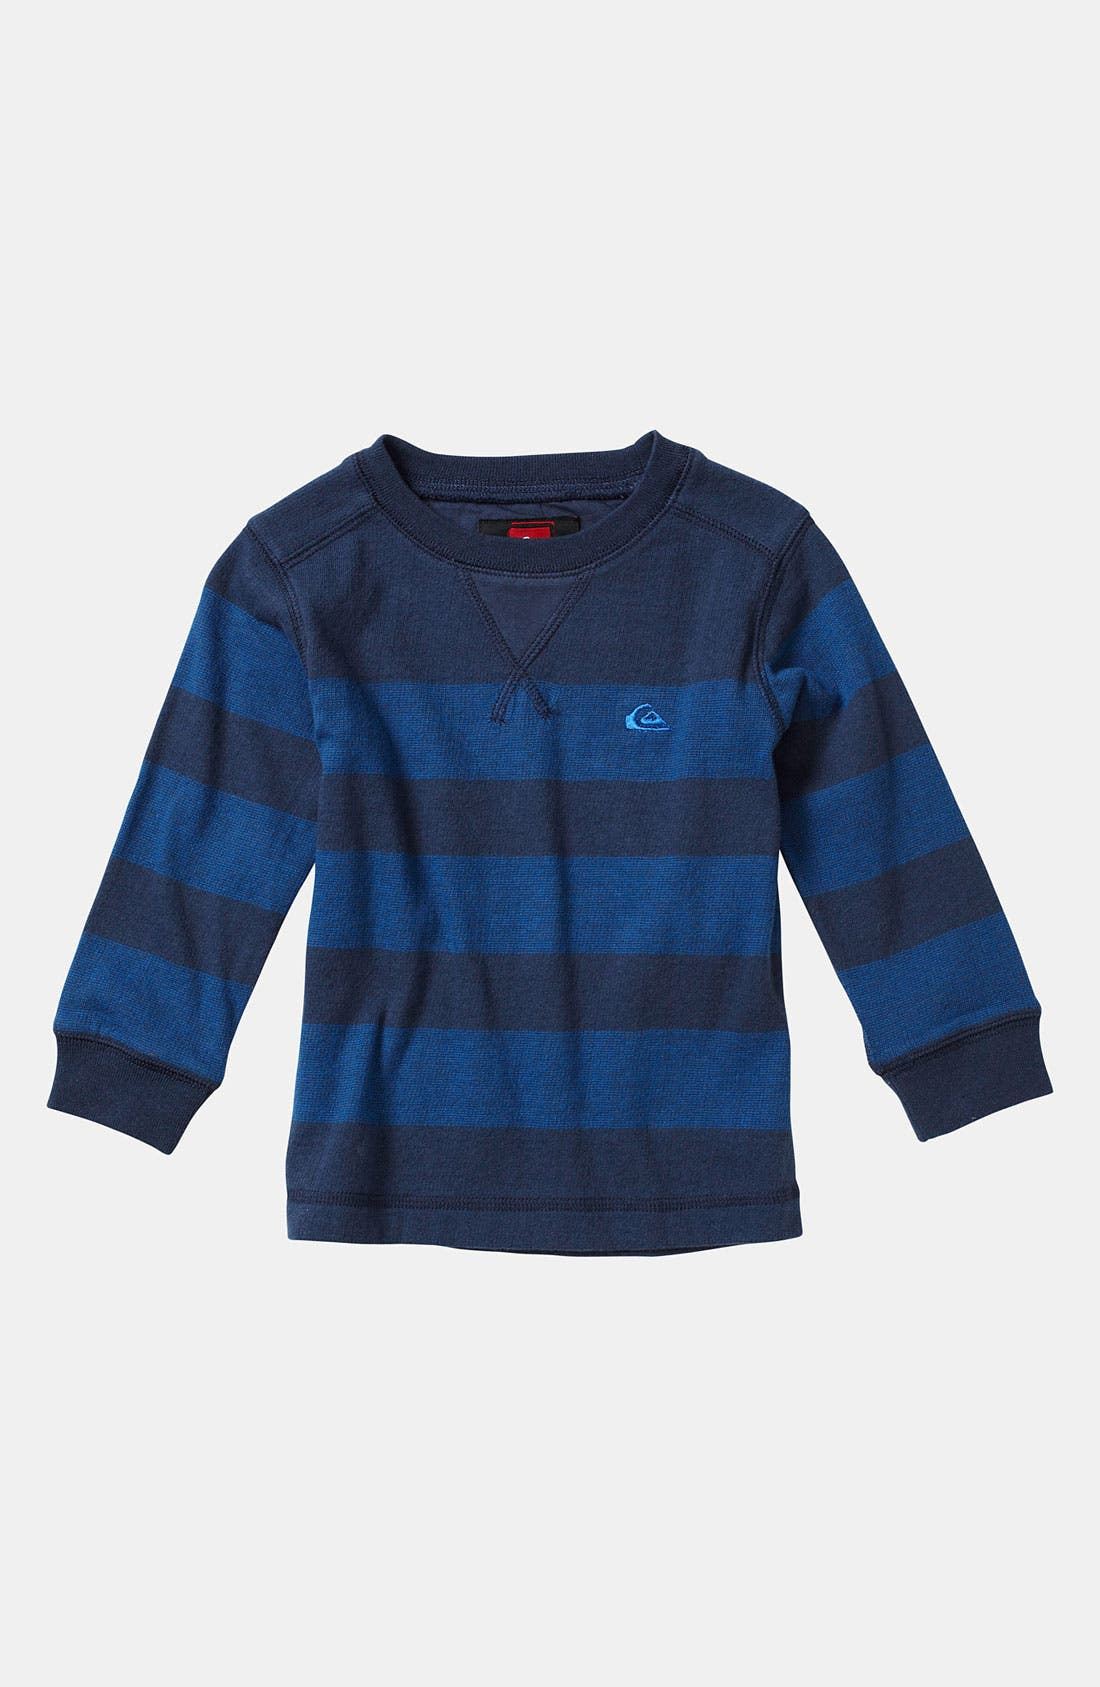 Alternate Image 1 Selected - Quiksilver 'Snit' Stripe Shirt (Toddler)